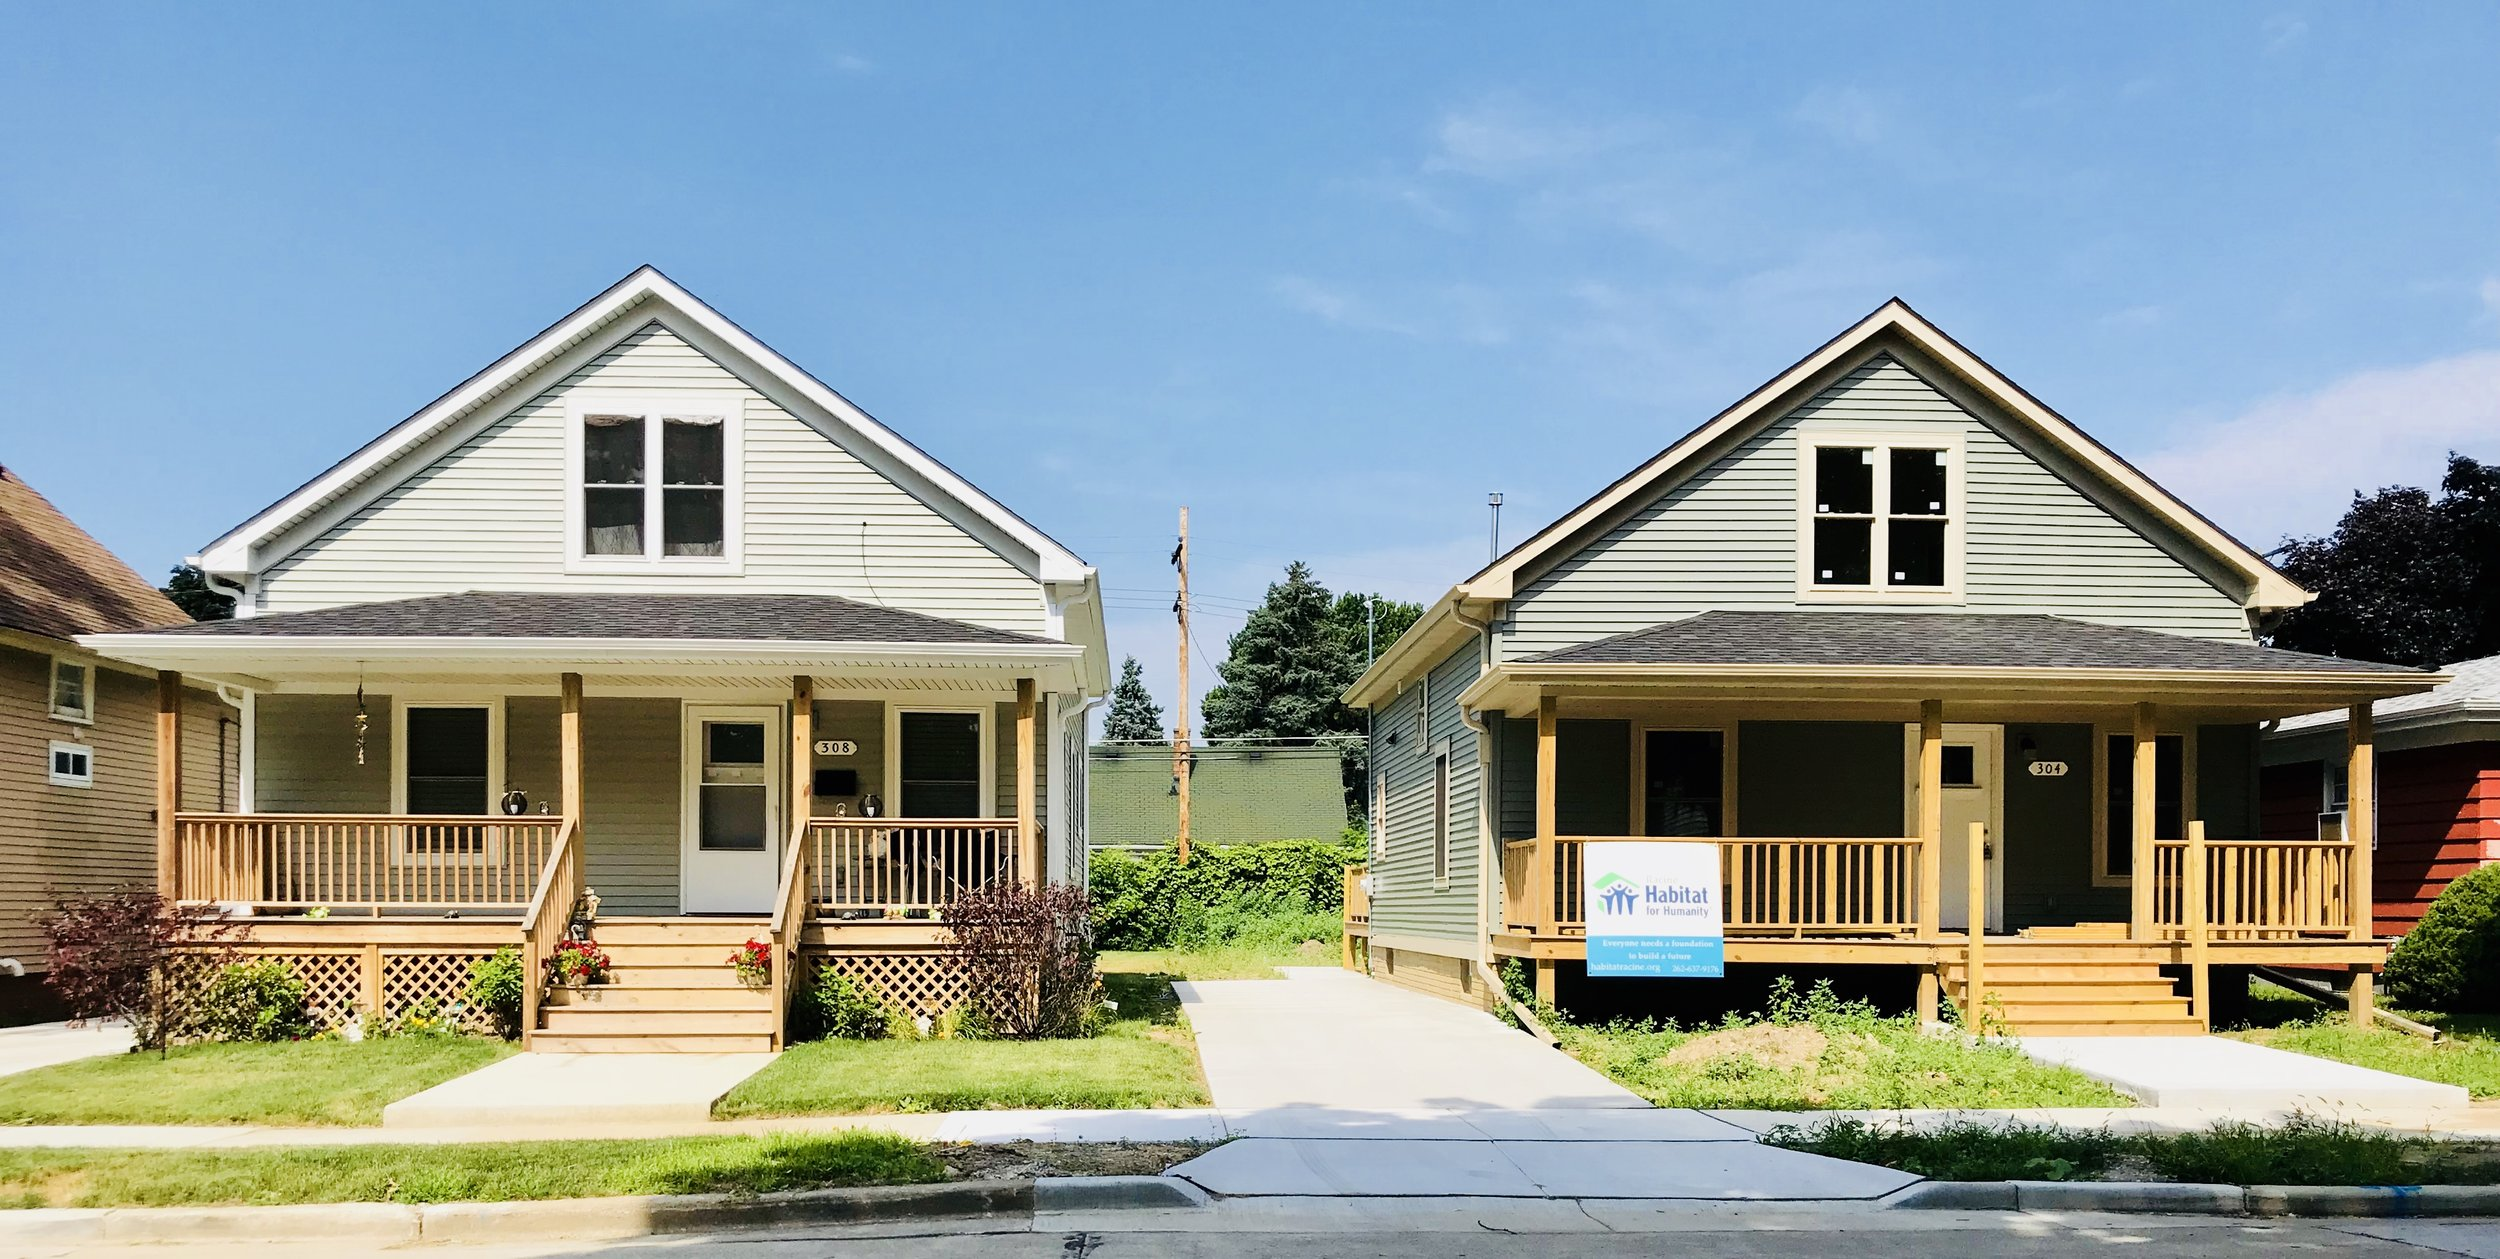 Two of our Habitat houses on Wickham Boulevard. The house on the left is finished, while the one on the right is nearly complete.